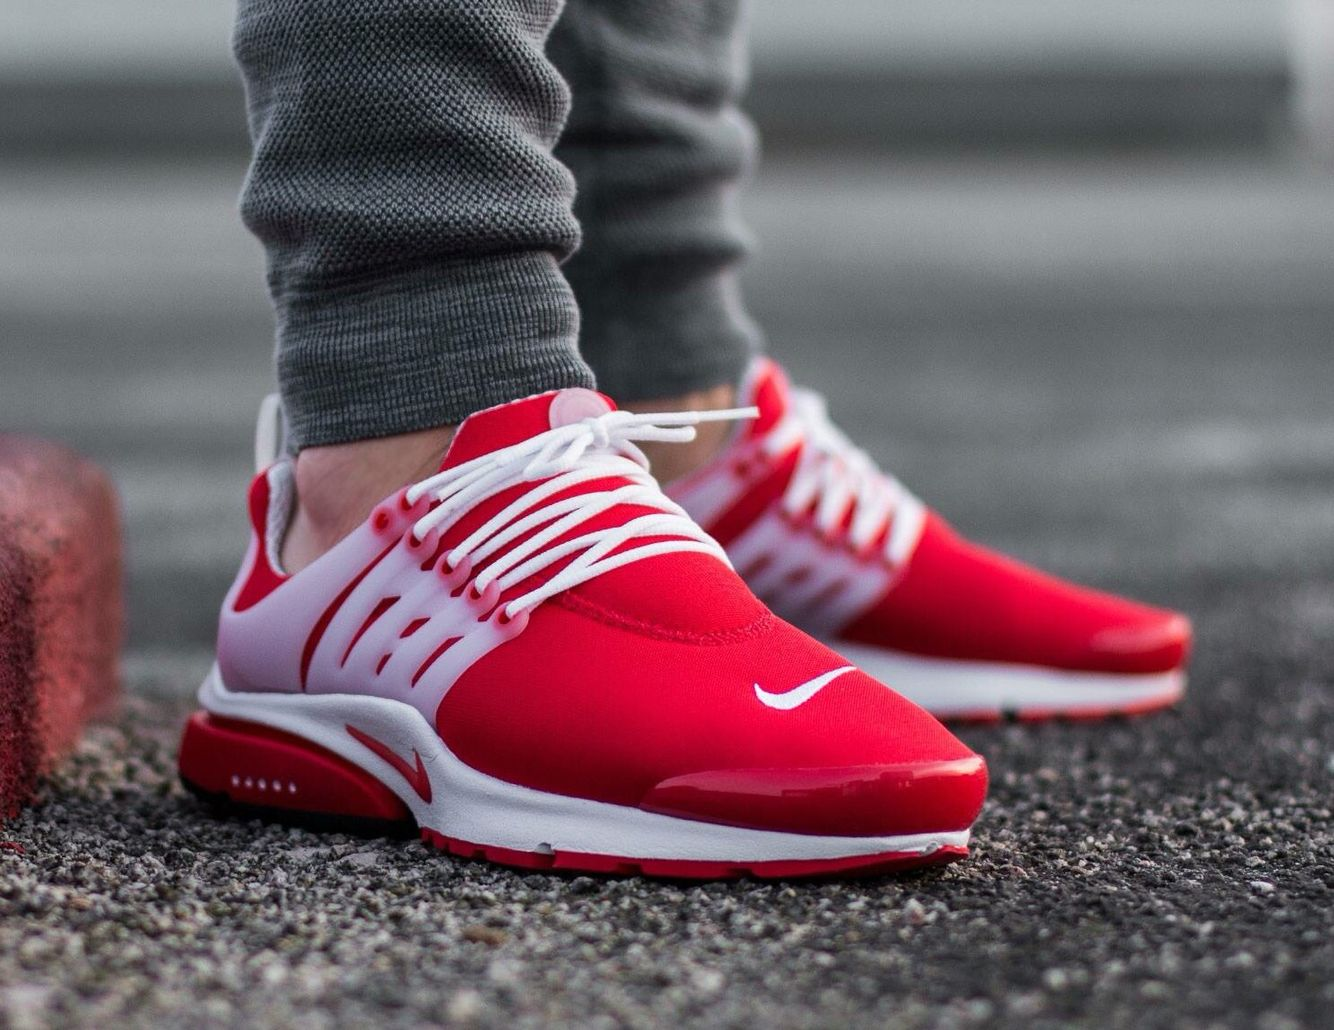 Nike Air Presto Red My Style In 2019 Sneakers Nike Nike Shoes